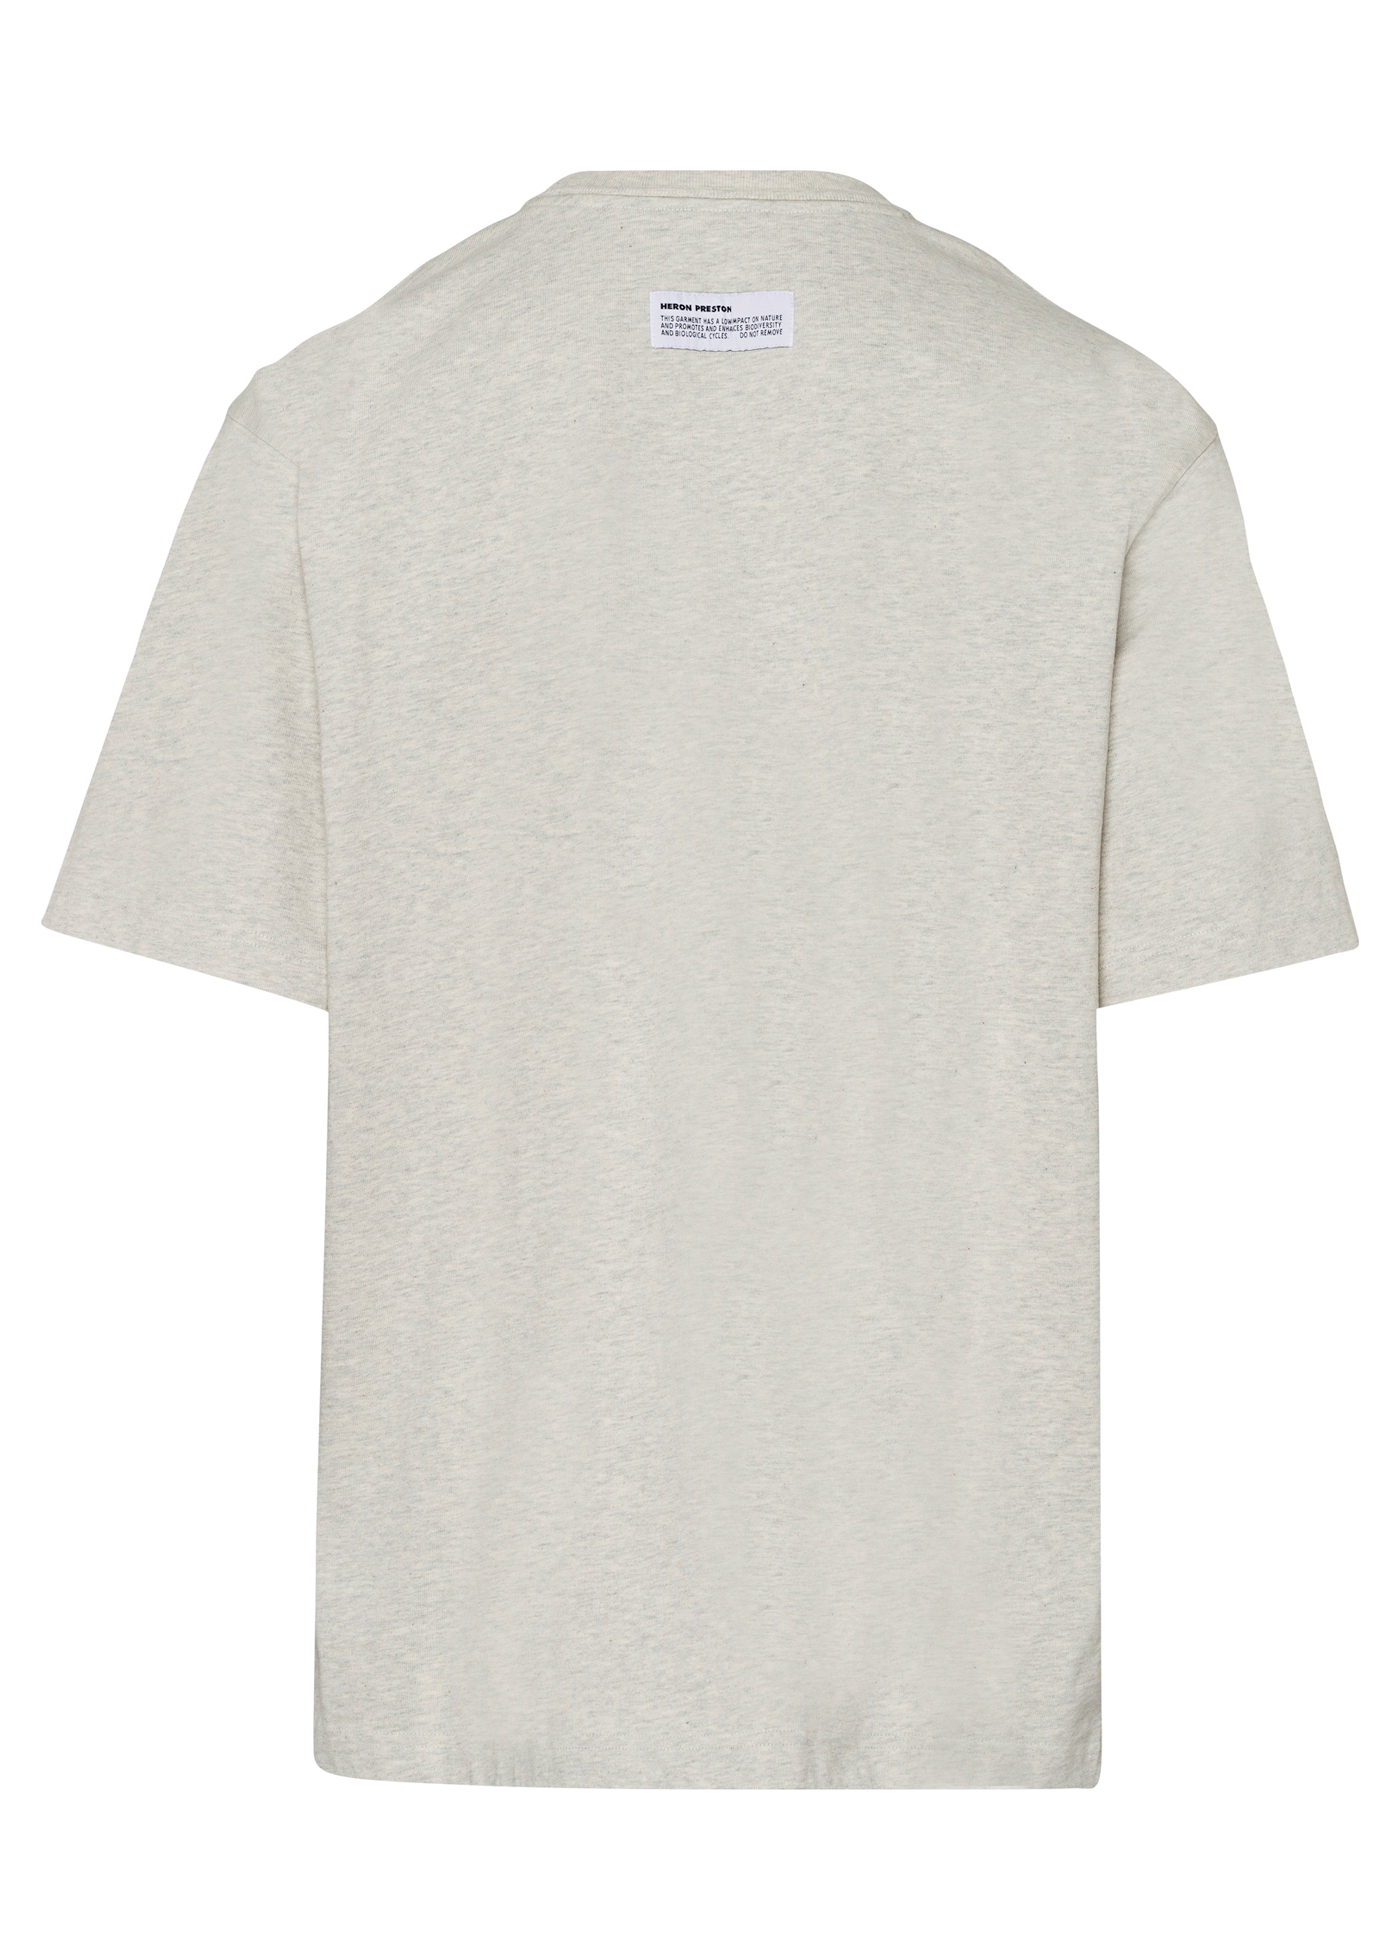 SS TEE OS NOISE CENSORED H. image number 1